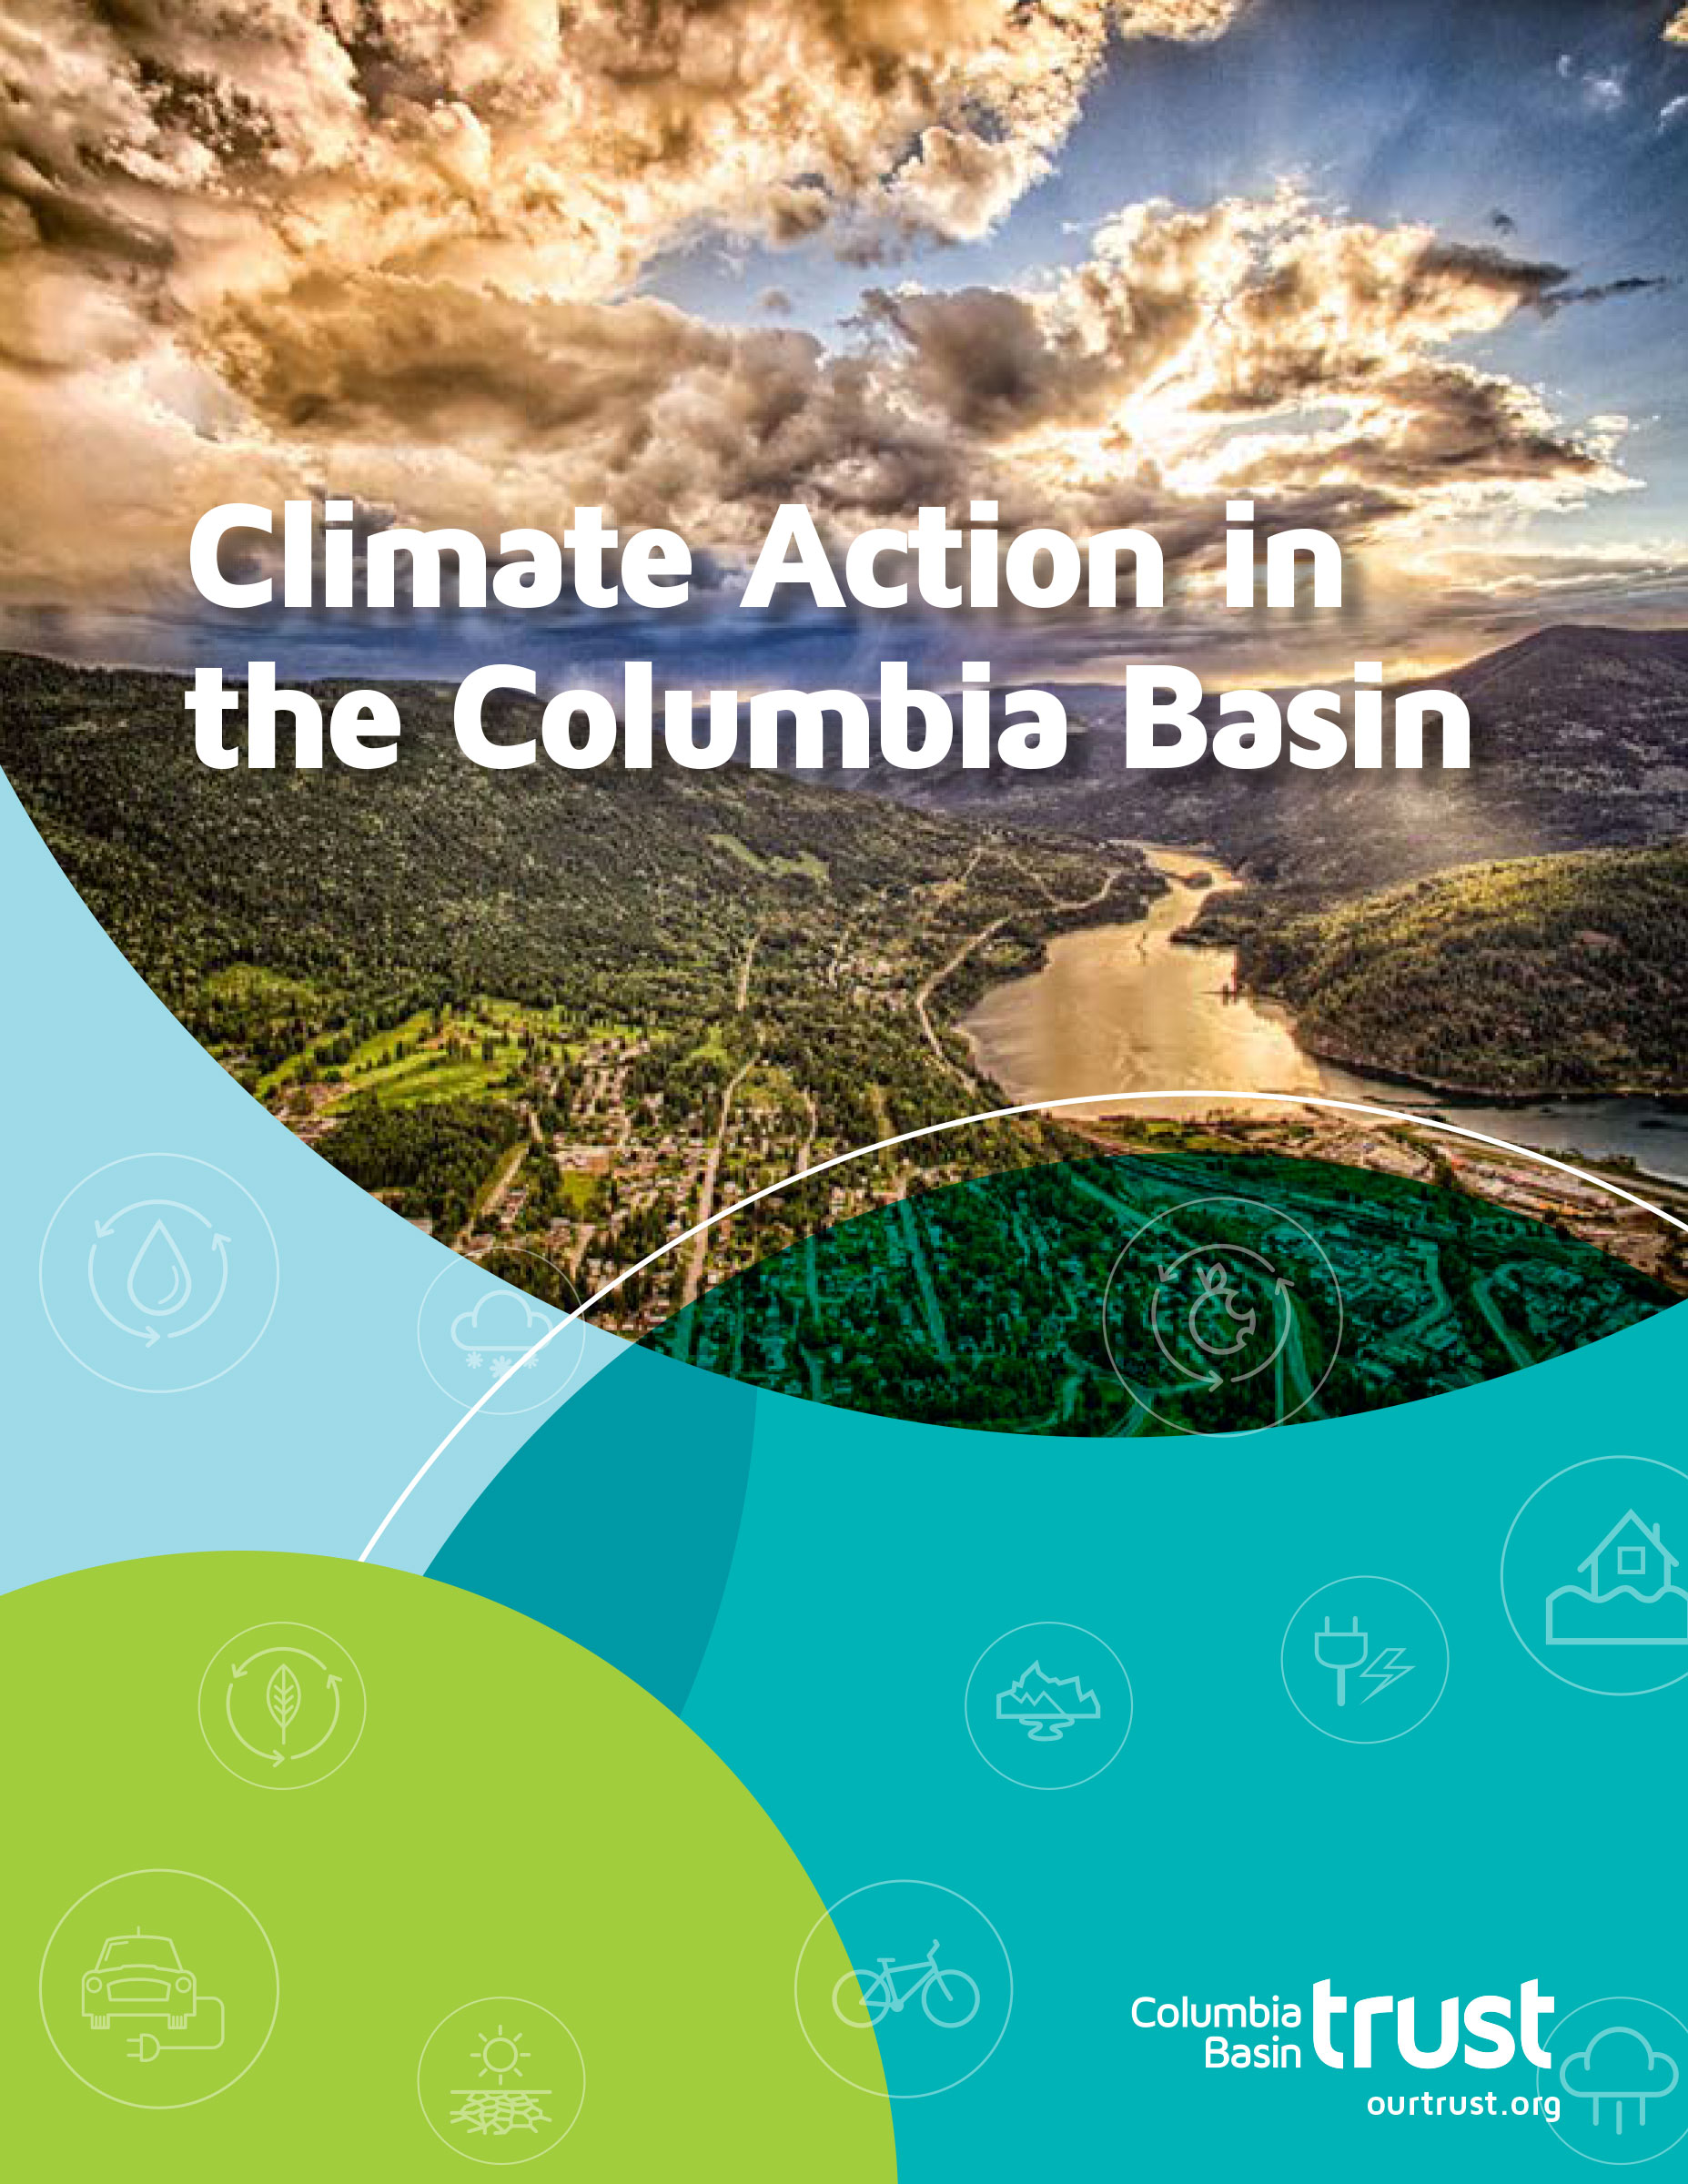 Meredith Hamstead - 2017-03 Columbia Basin Trust - Climate Action Booklet Interactive